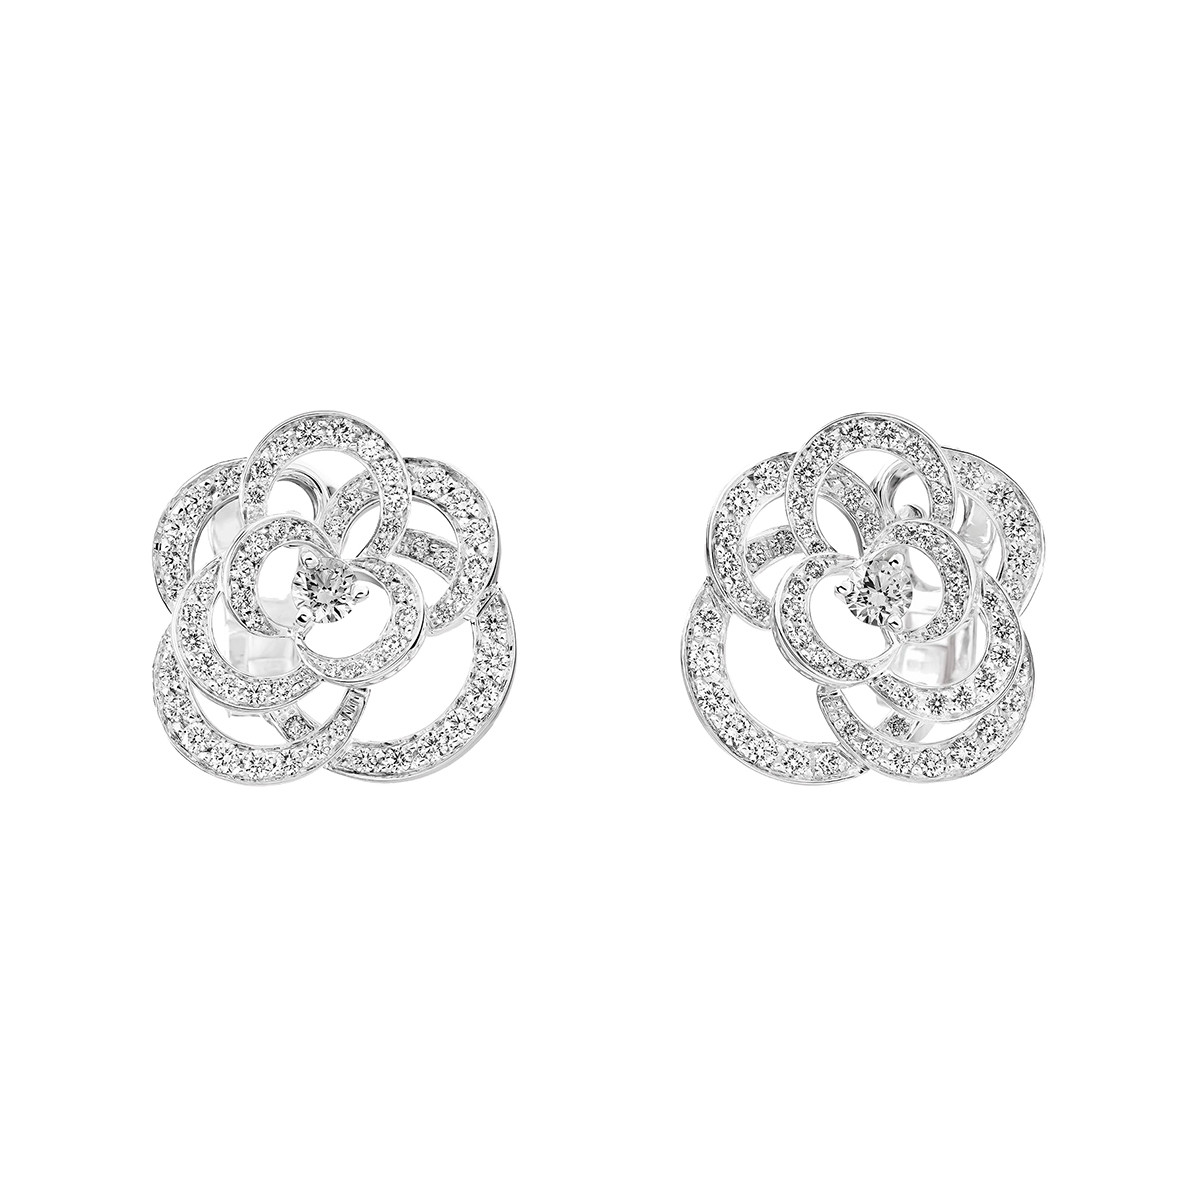 18k White Gold & Diamond Fil de Camélia Earrings